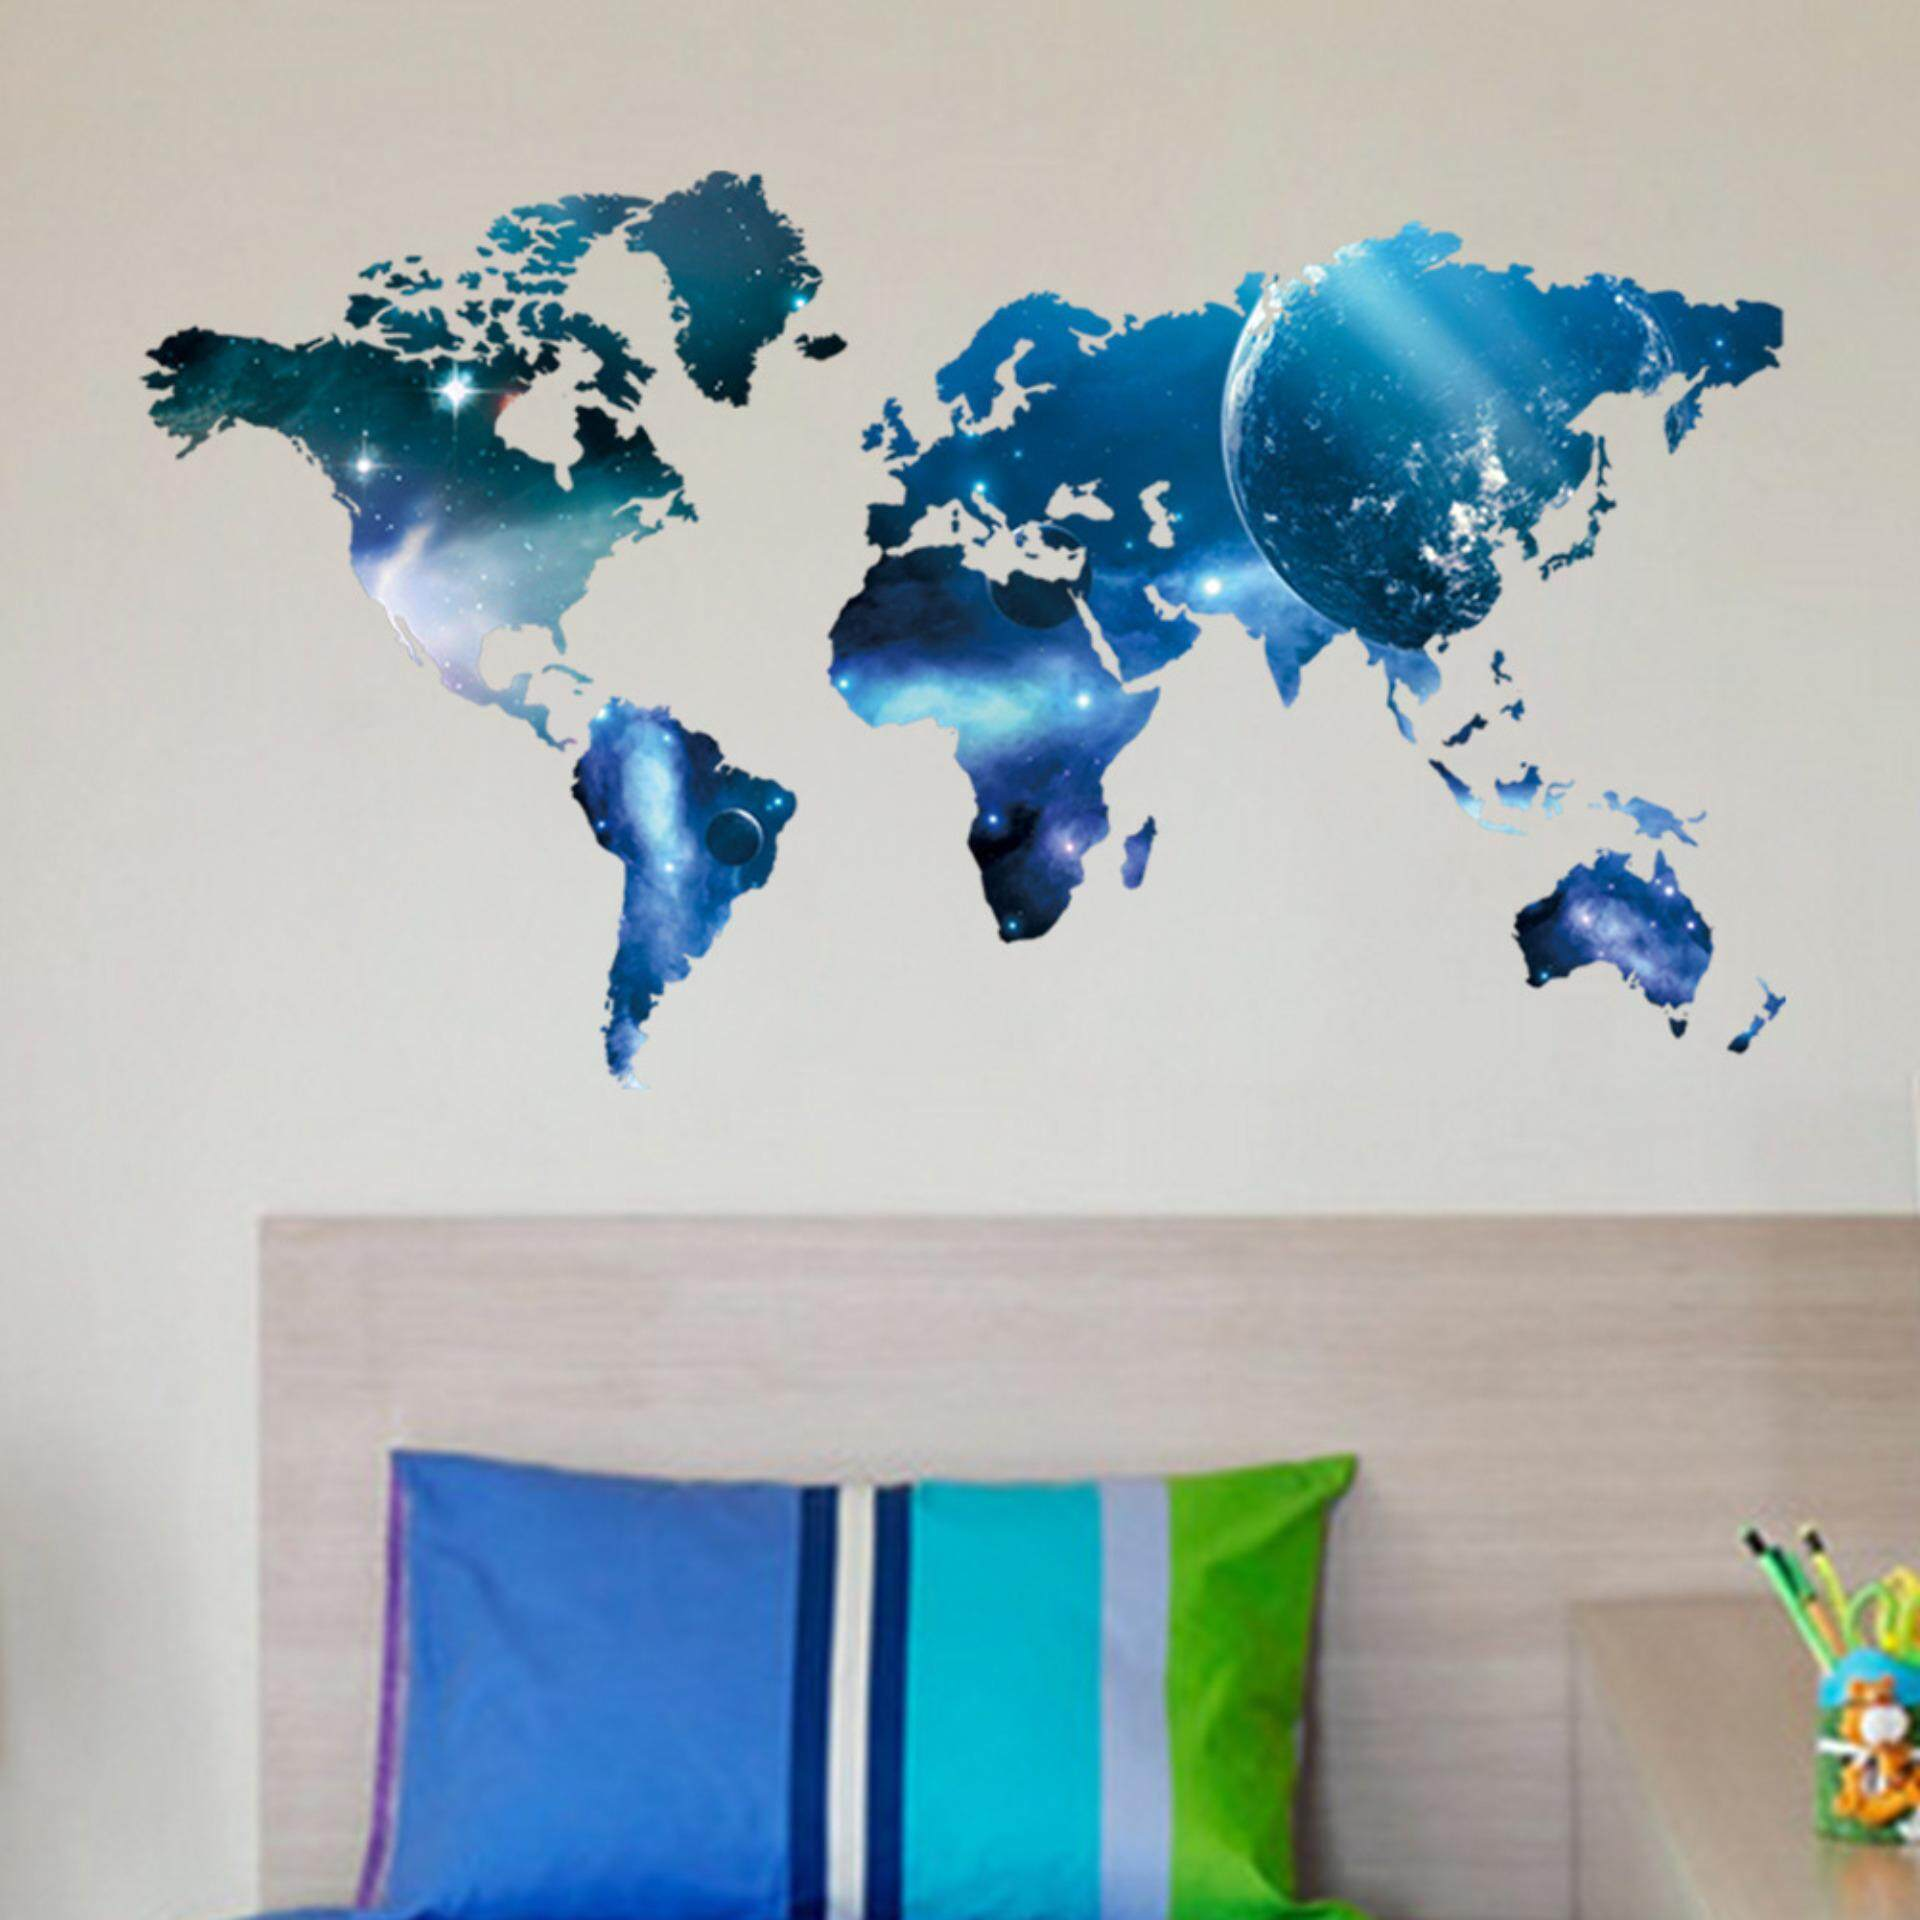 Wall stickers for sale wall decals prices brands review in world customer pvc wall stickers removable decal mural diy art picture wallpaper room home decor gumiabroncs Image collections